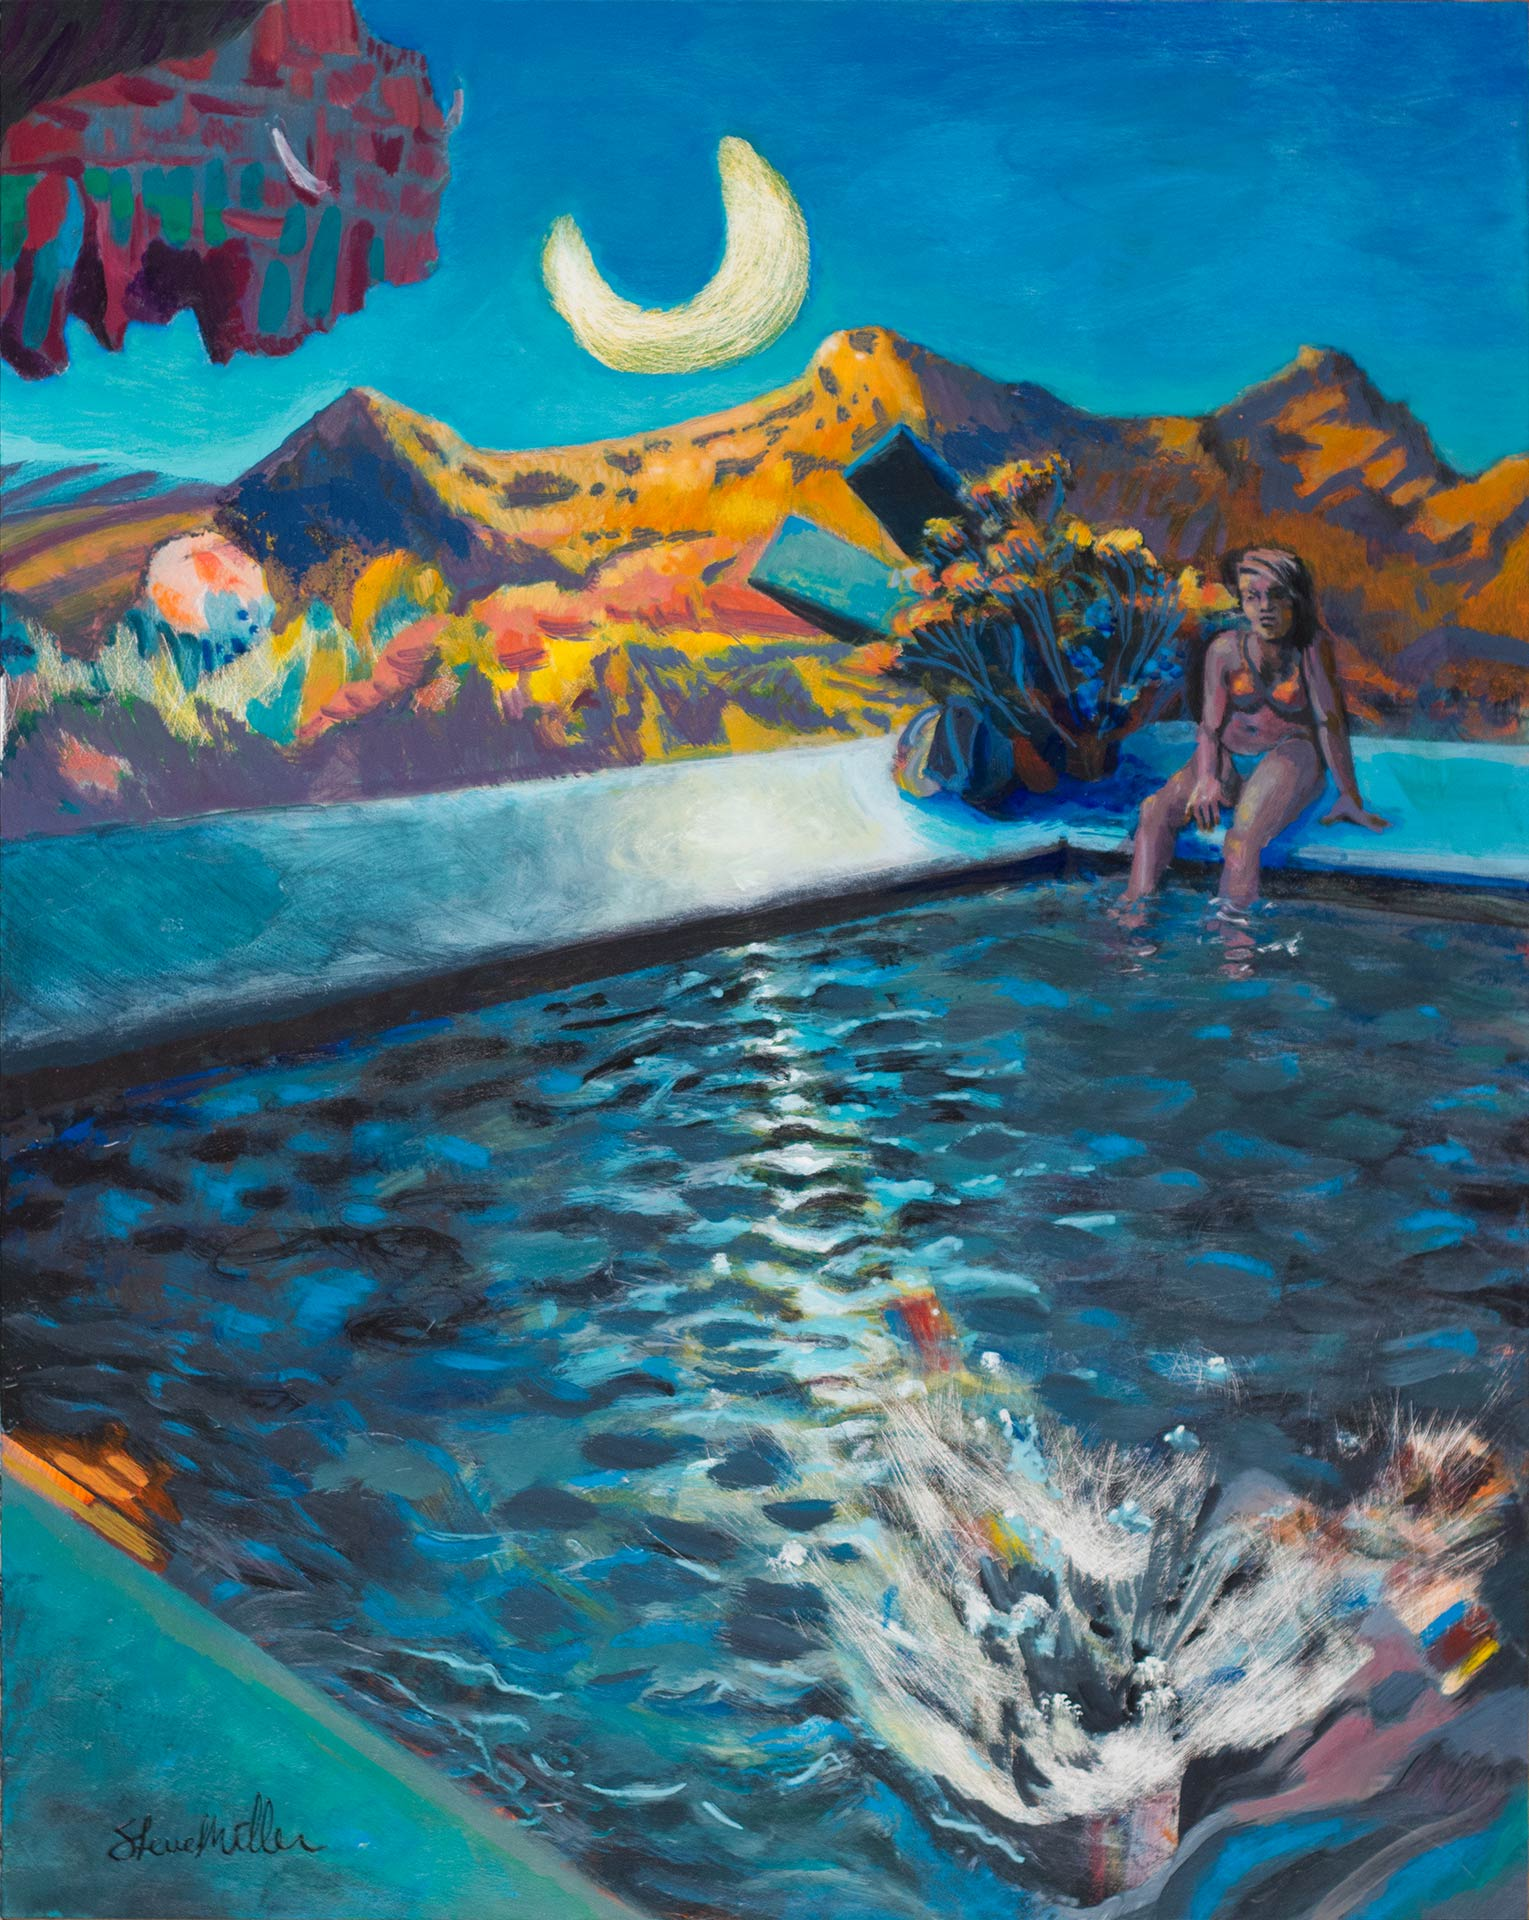 "Acrylic landscape painting by Steve Miller of a melancholy girl daydreaming by the pool when someone makes a splash. ""Under The Bison Moon"", 16"" x 20"", acrylic on GessoBoard, 2016."